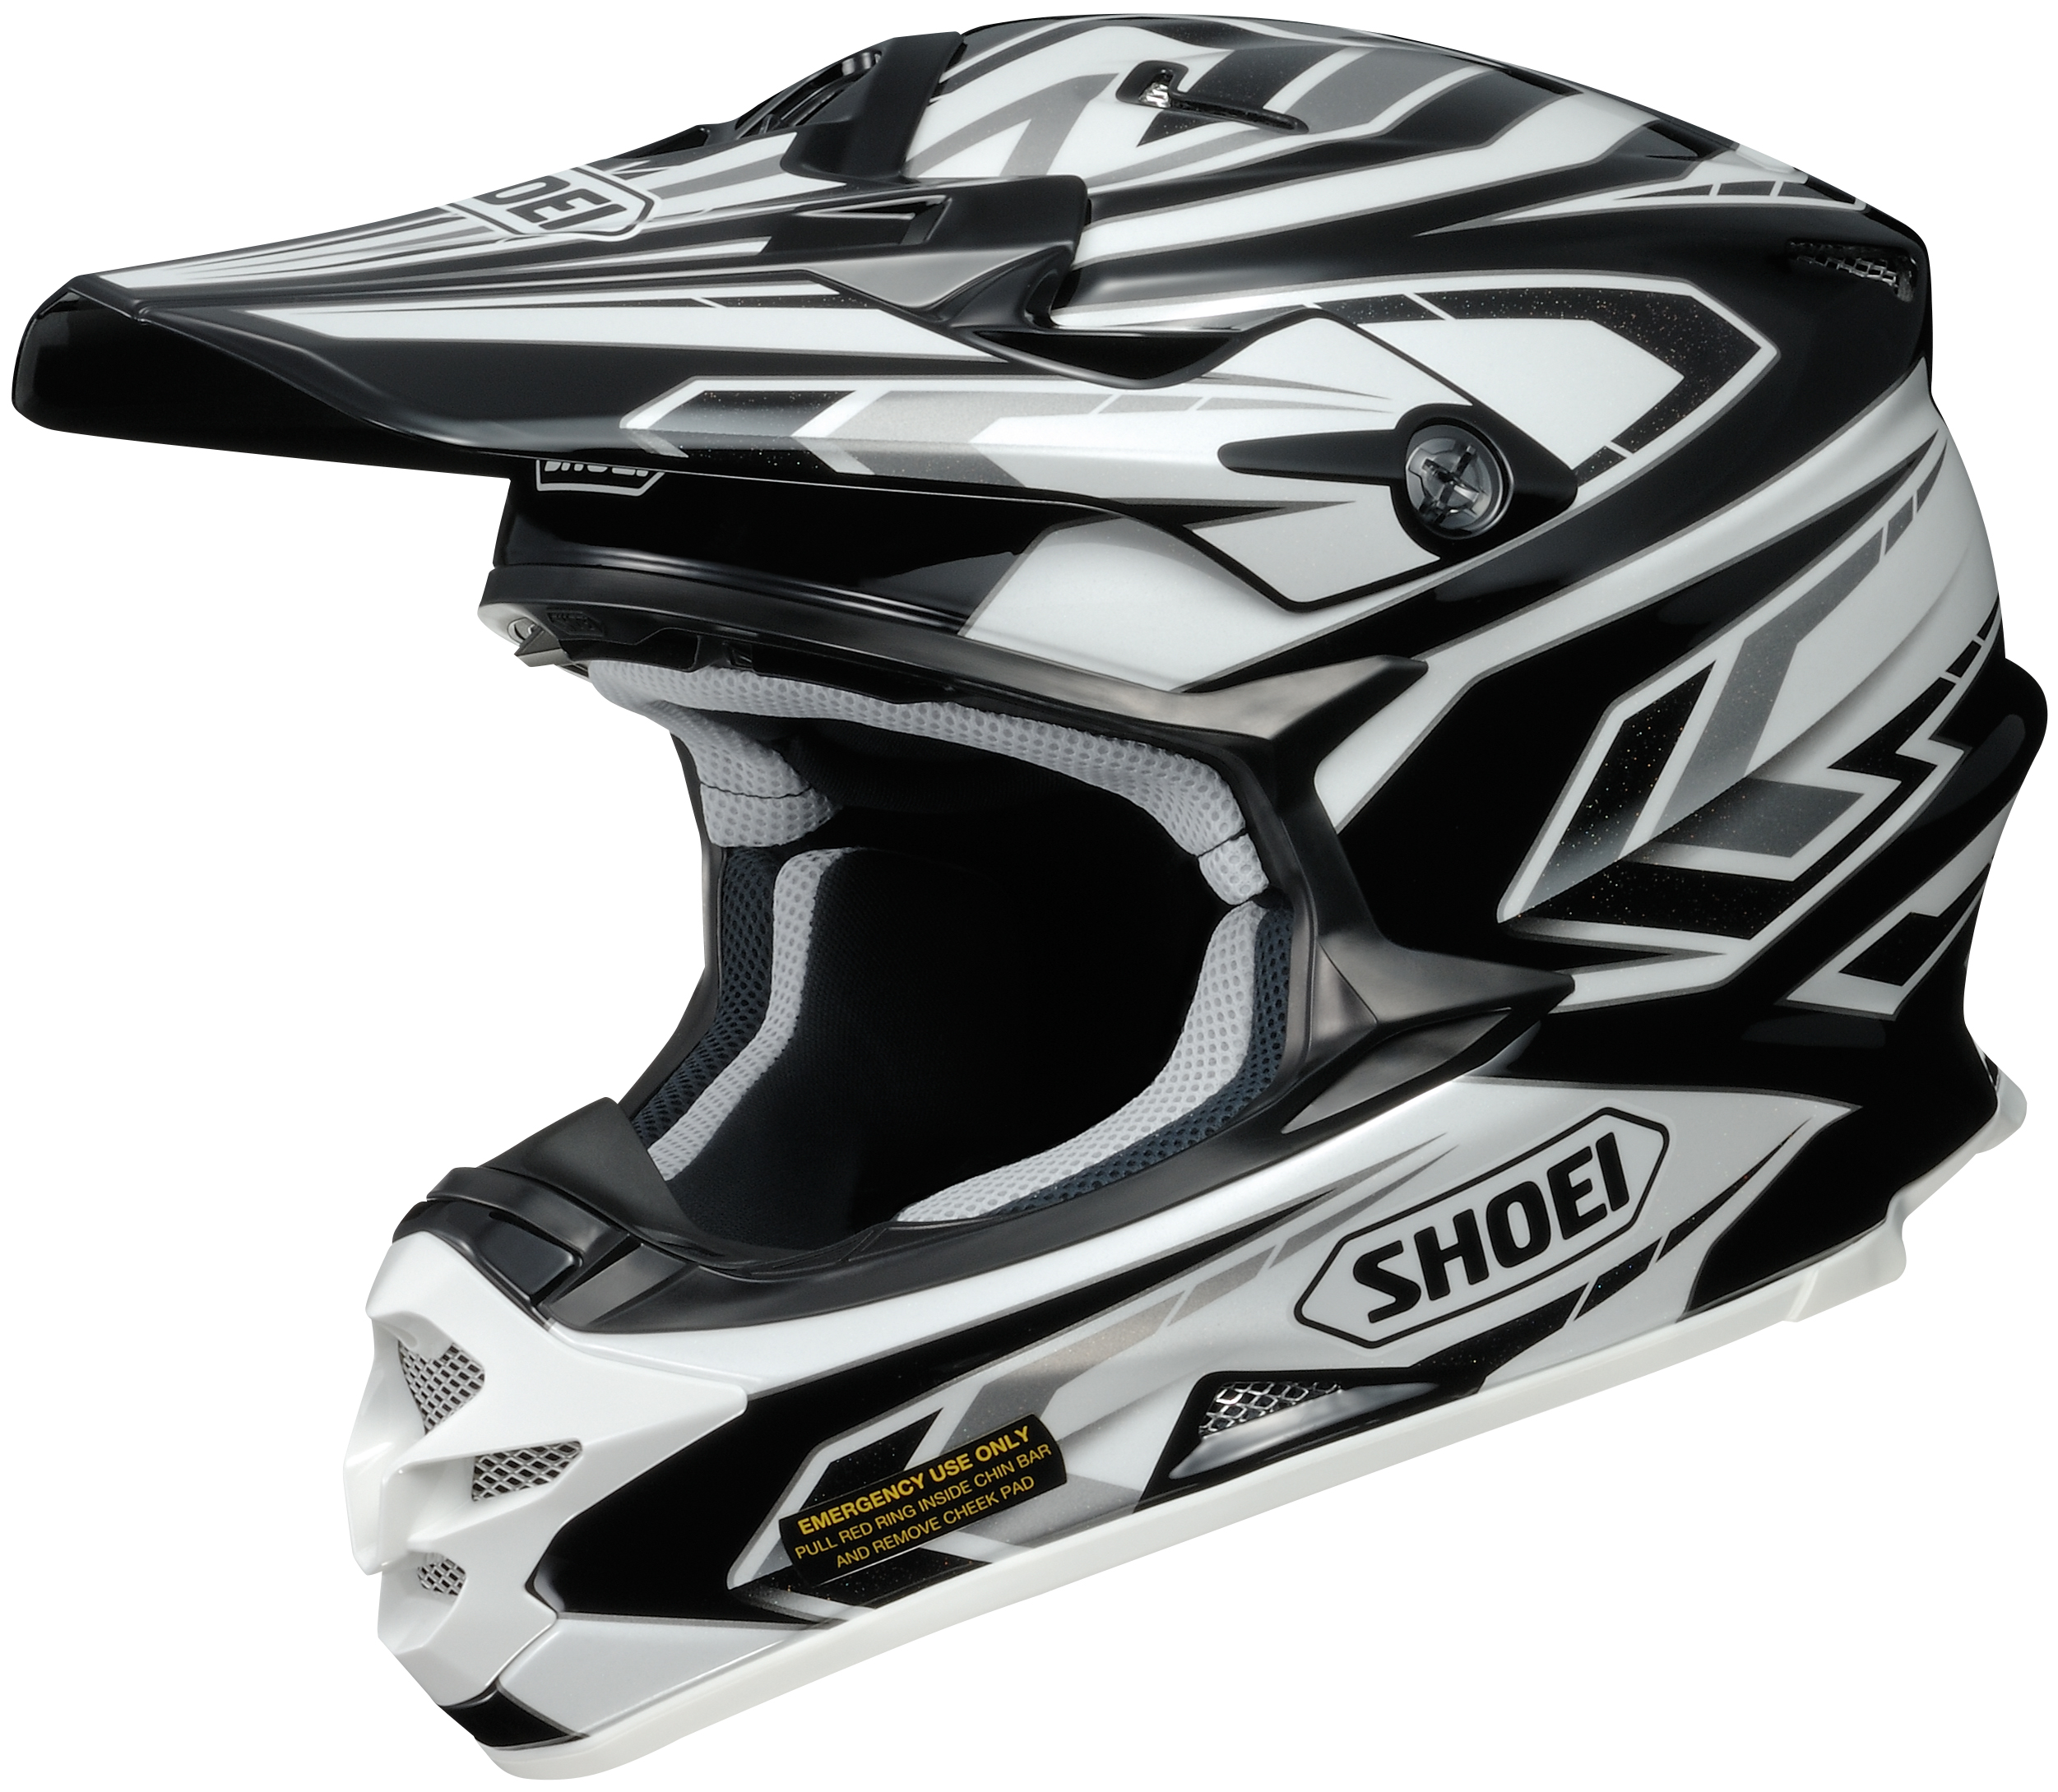 shoei vfx w block pass moto off road helmet closeout ebay. Black Bedroom Furniture Sets. Home Design Ideas